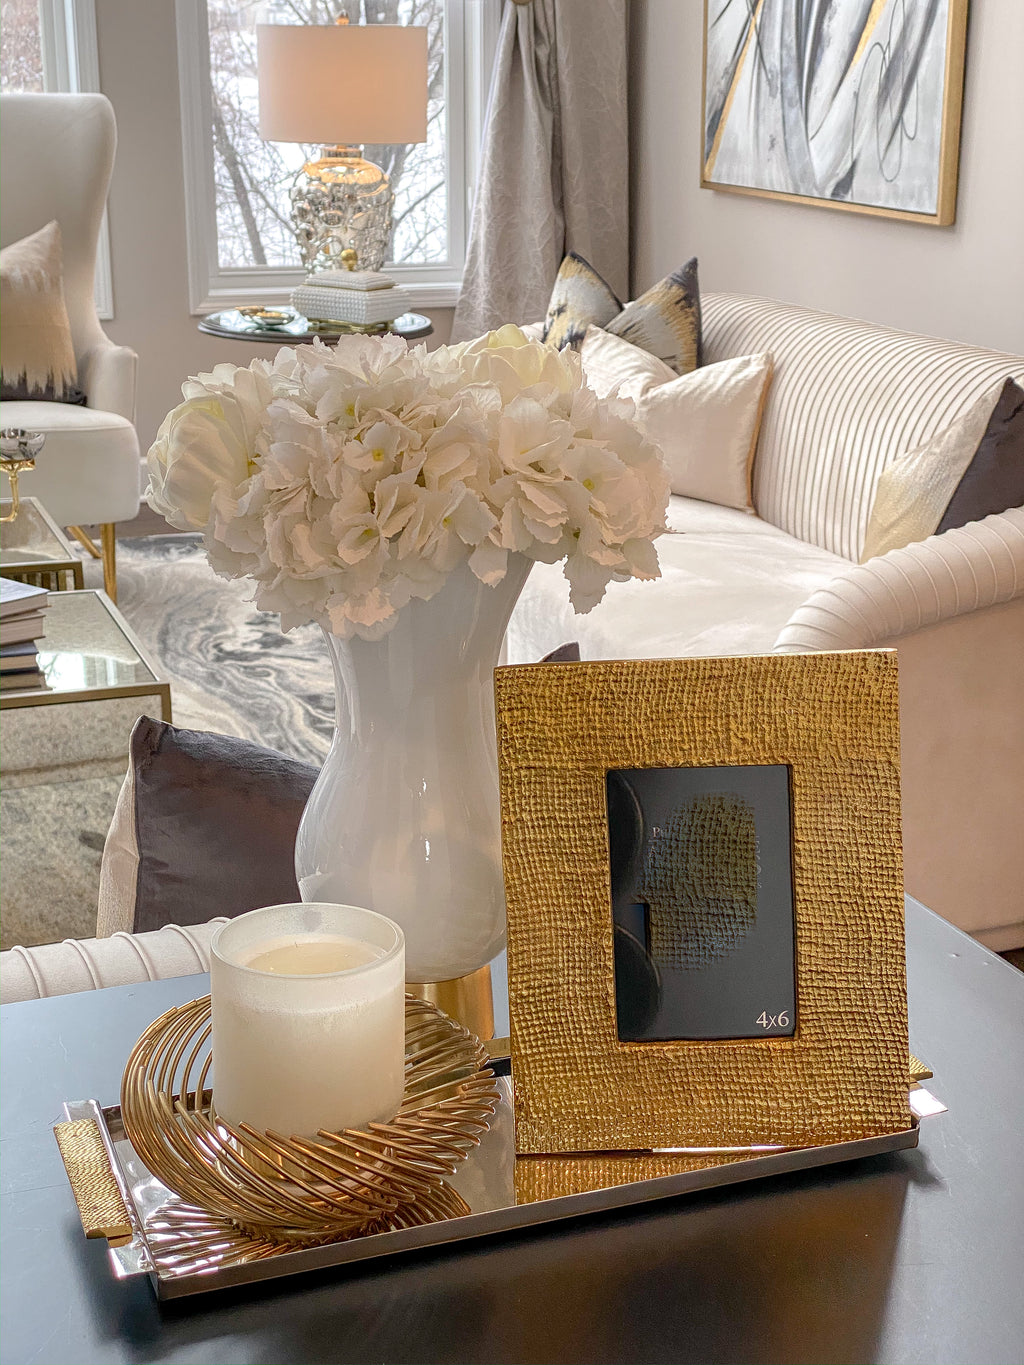 Textured Gold Metal Photo Frame-Inspire Me! Home Decor